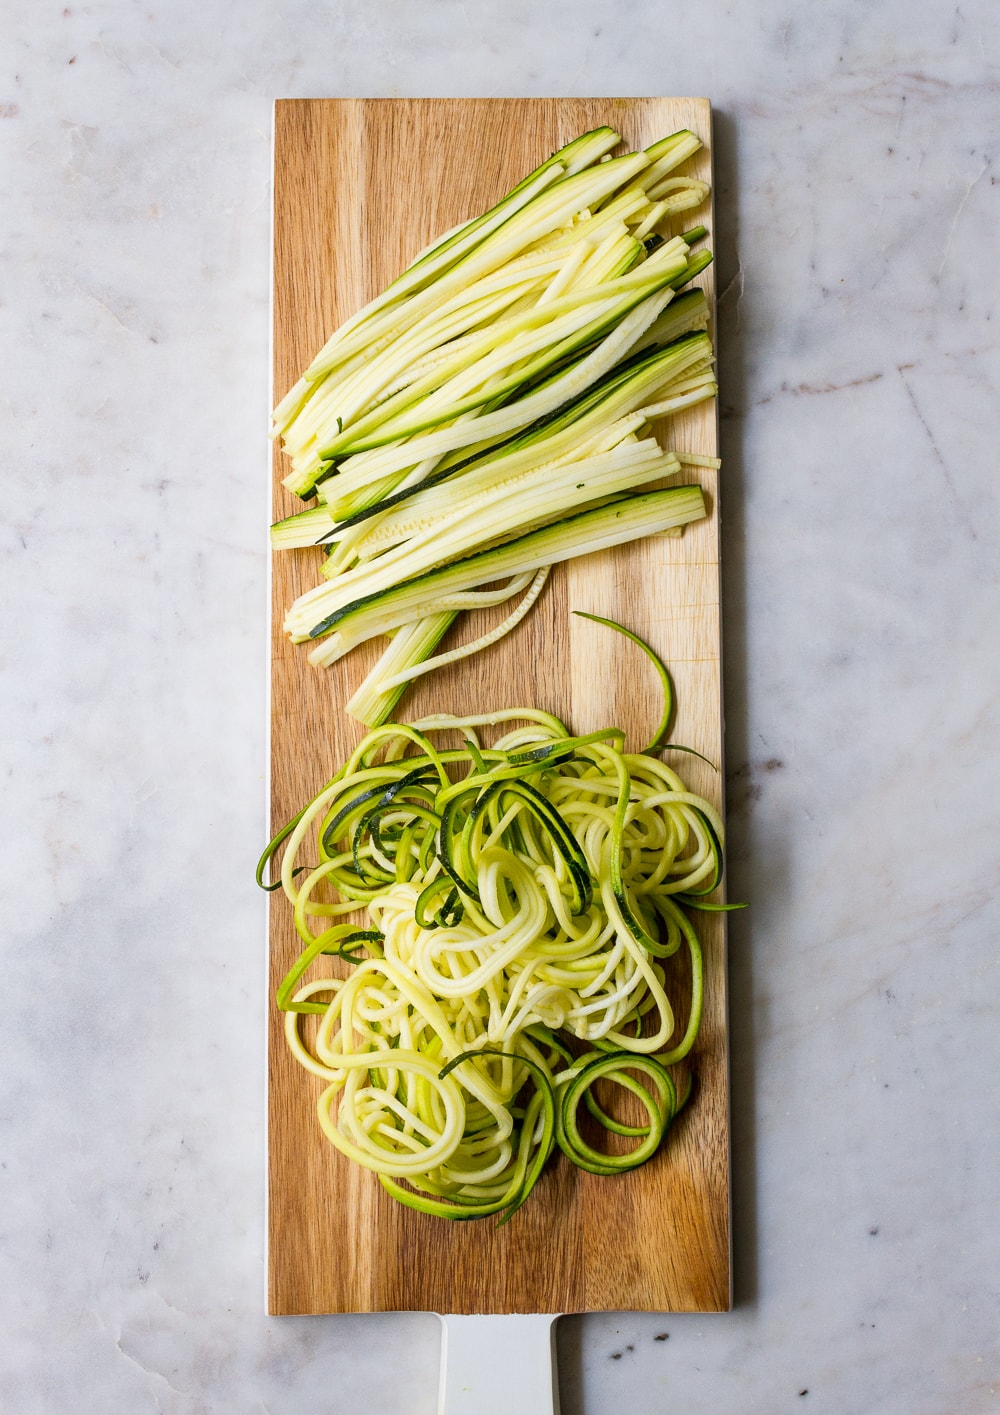 top down view of julienned zucchin and spiralized zuccini on a long rectangular wooden serving paddle board with white handle, on a marble slab